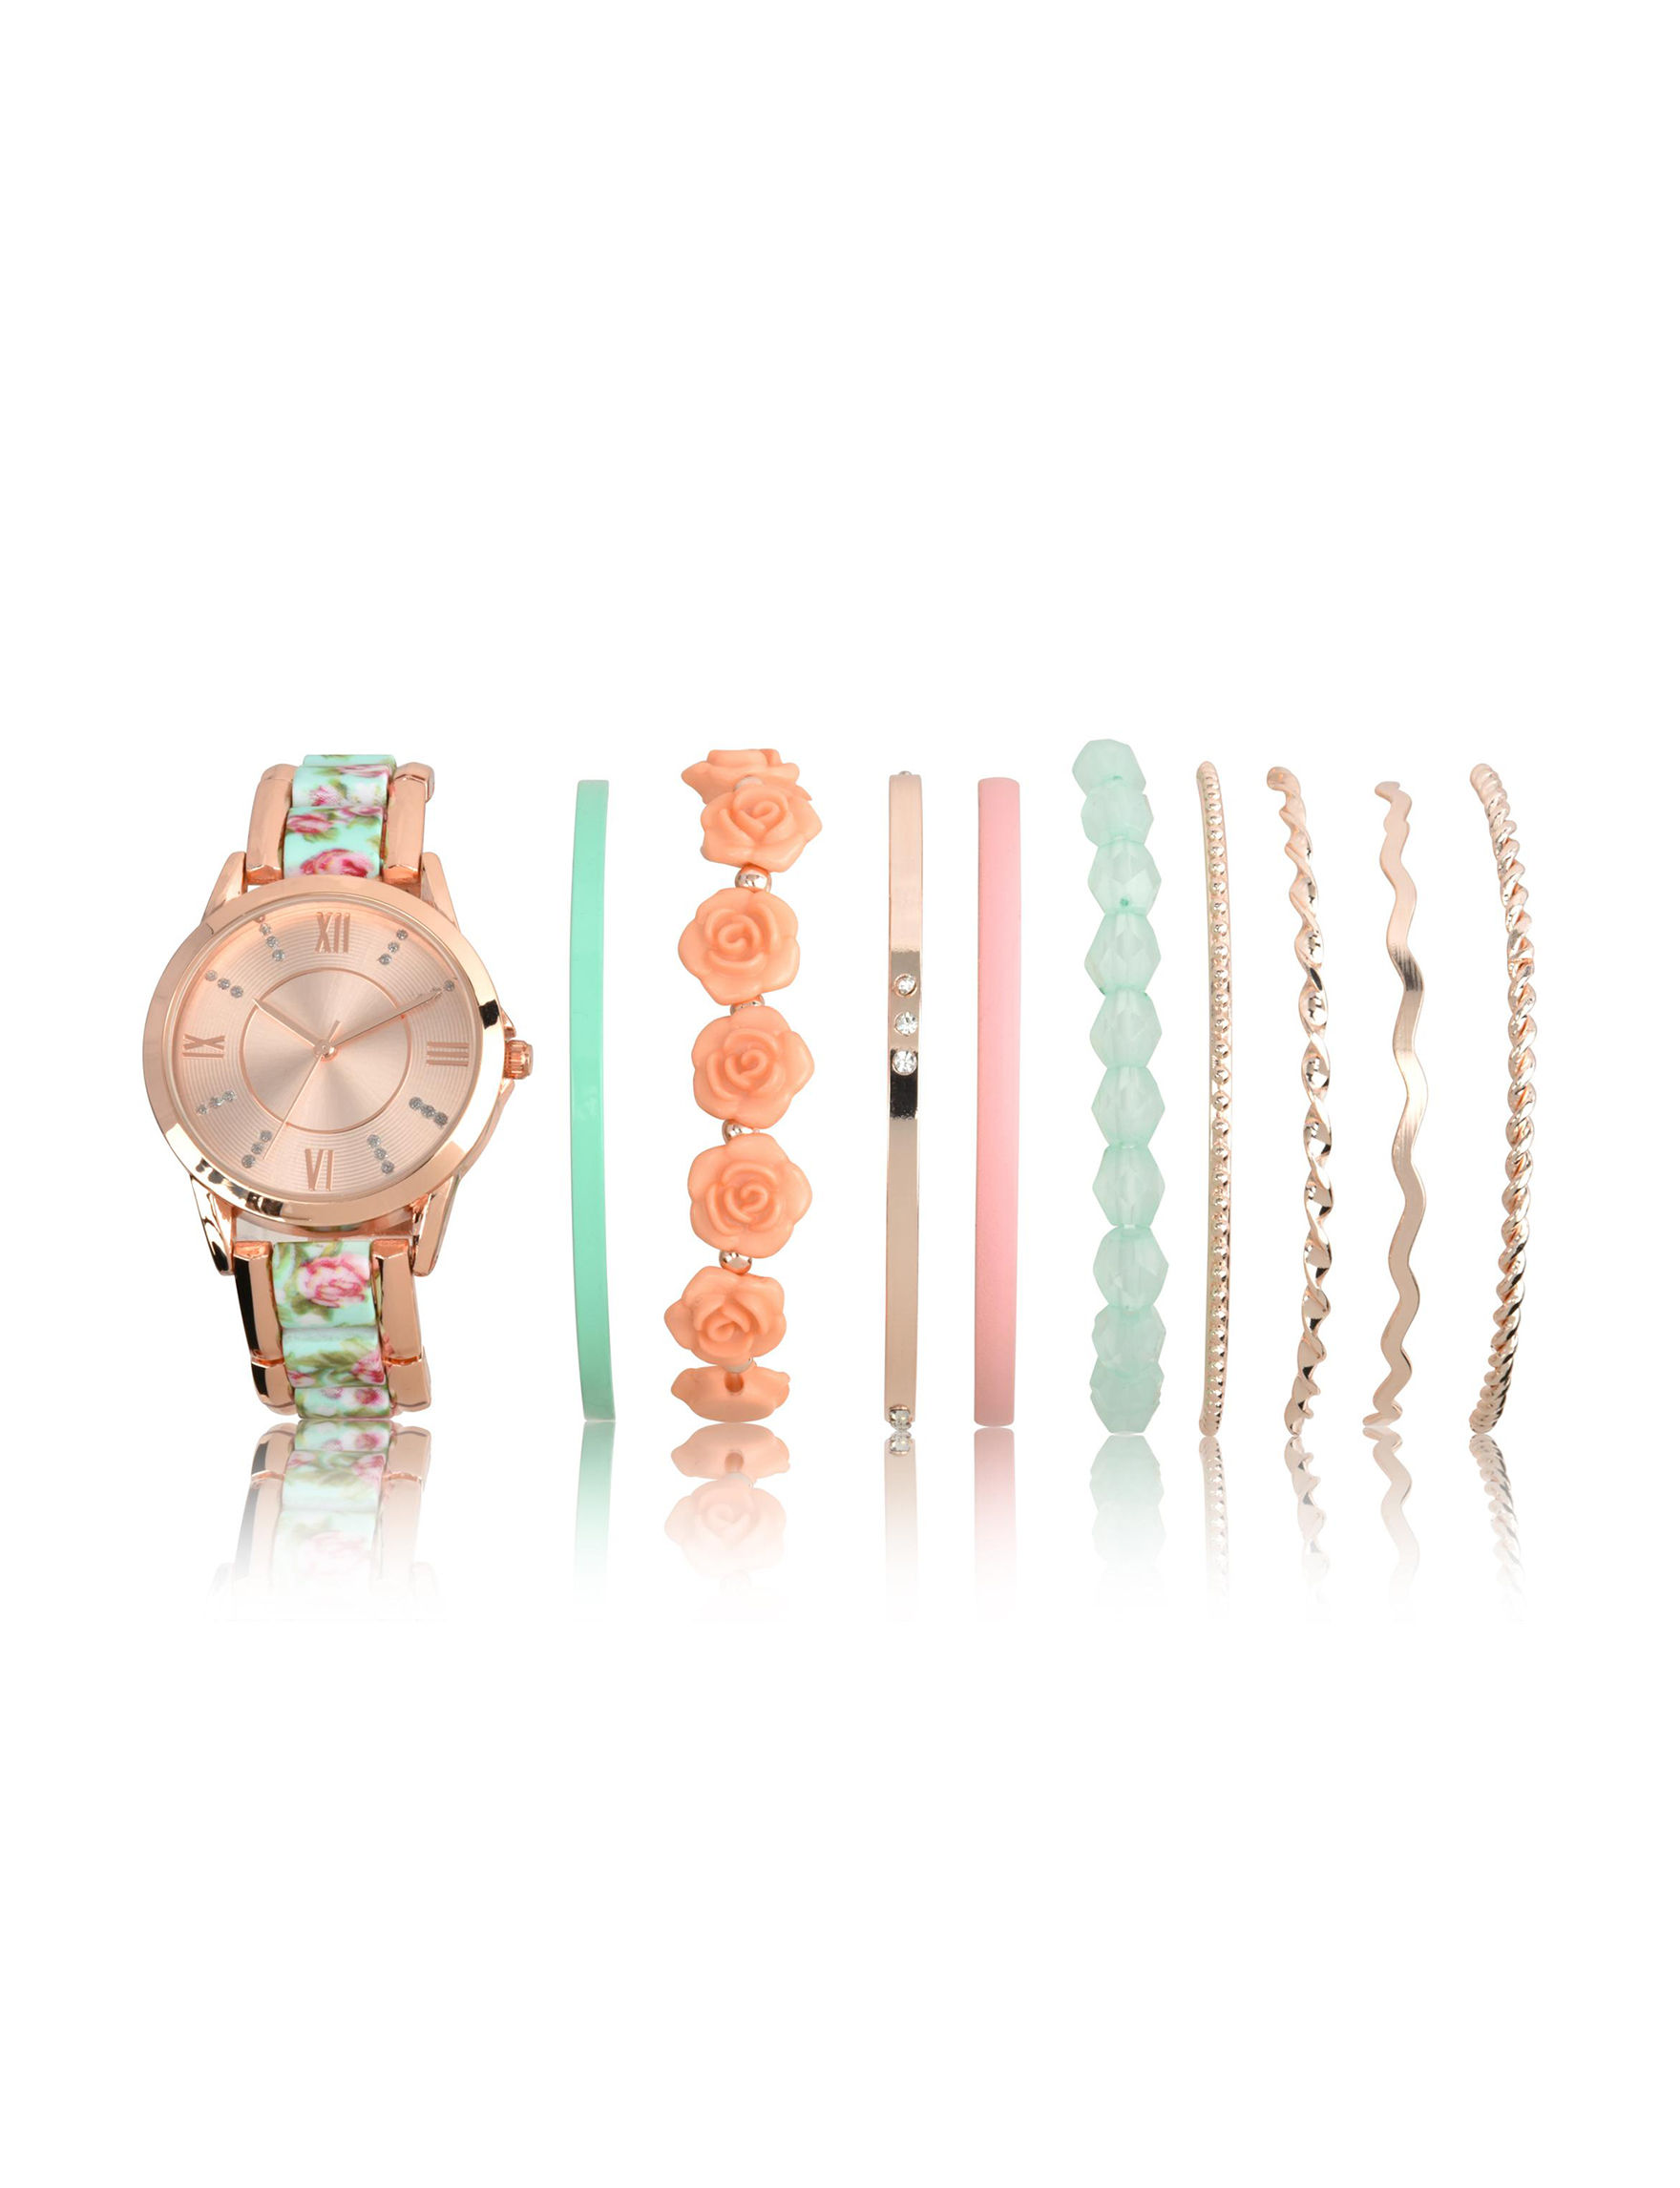 Accutime Rose Gold Fashion Watches